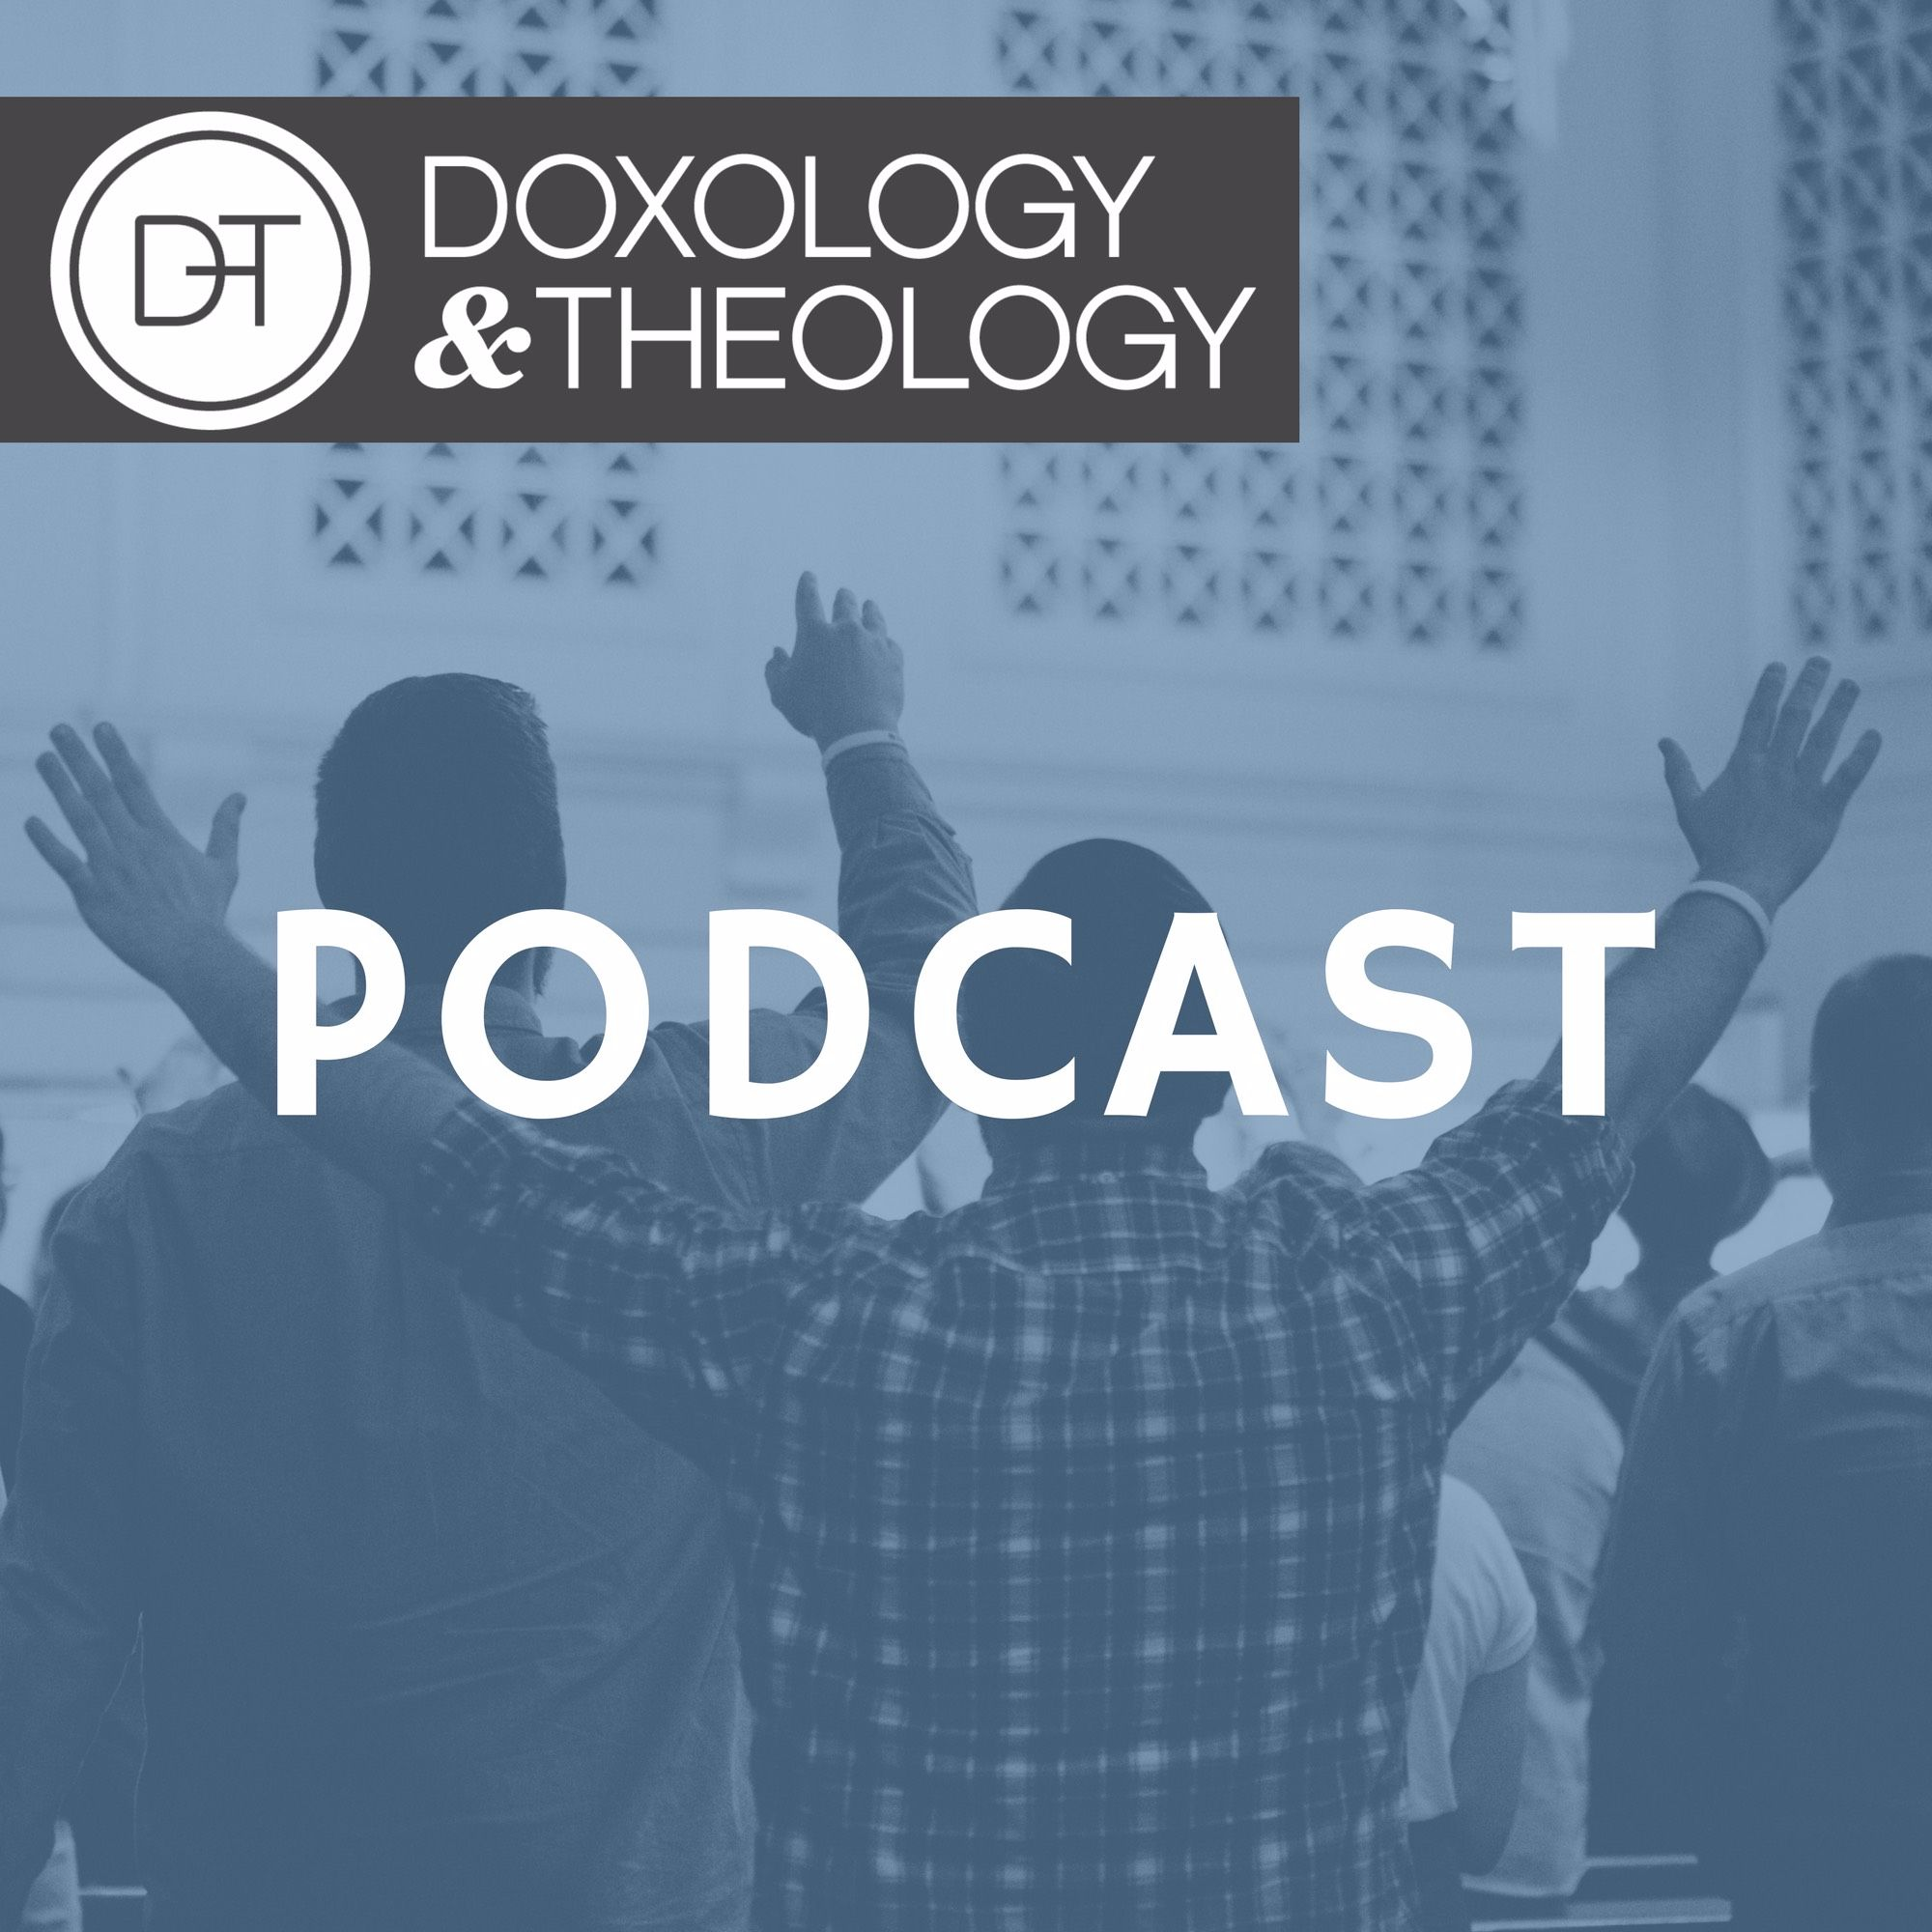 Doxology & Theology on Apple Podcasts